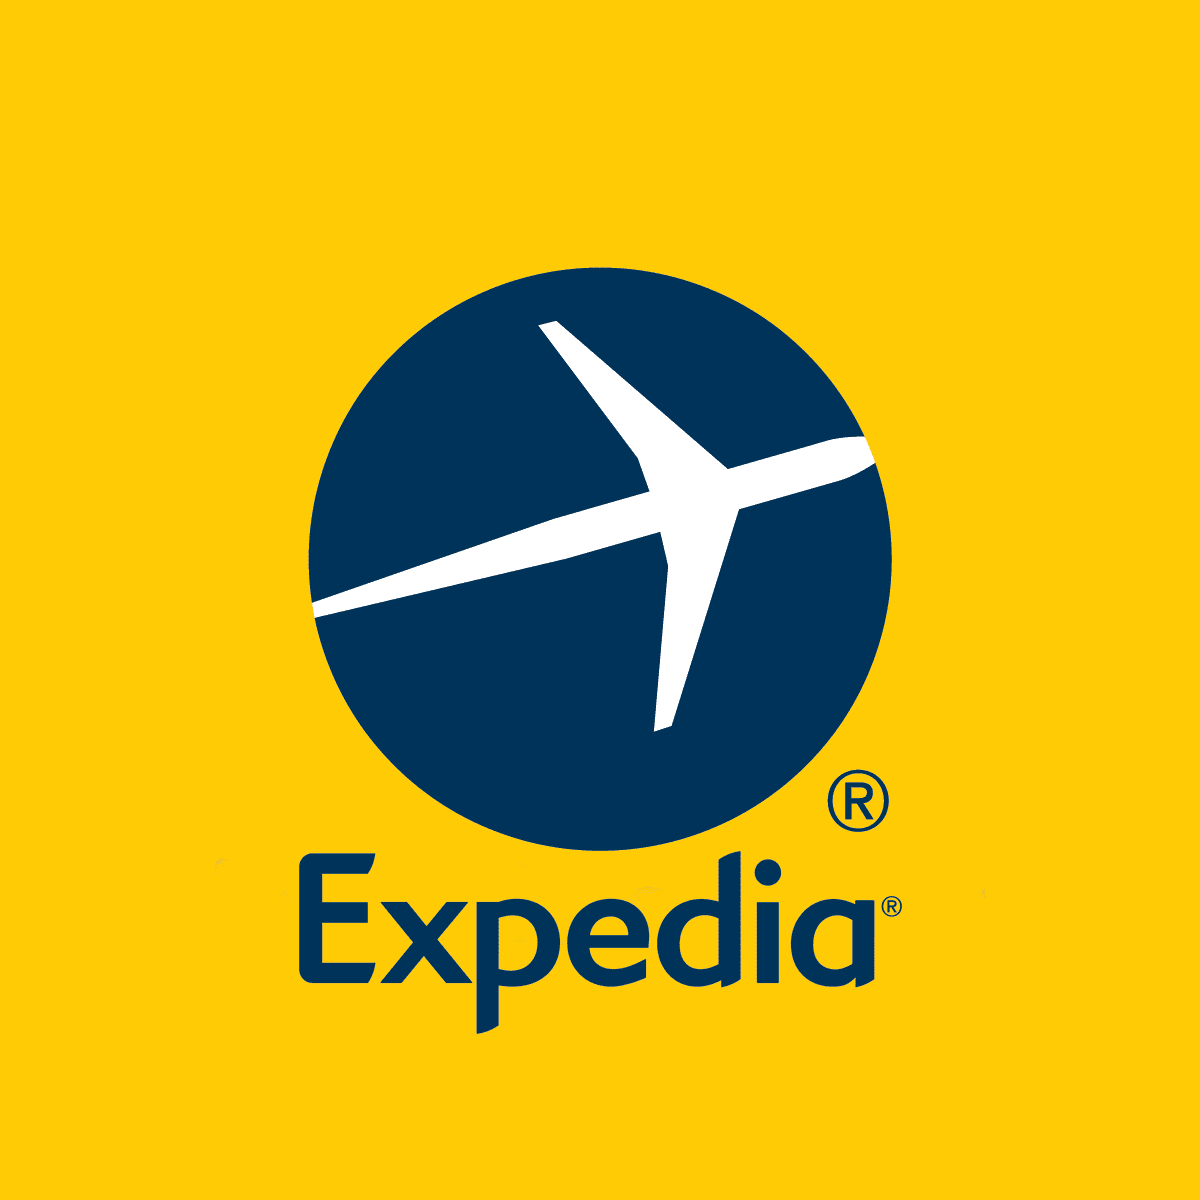 Strategic Marketing- Expedia Logo